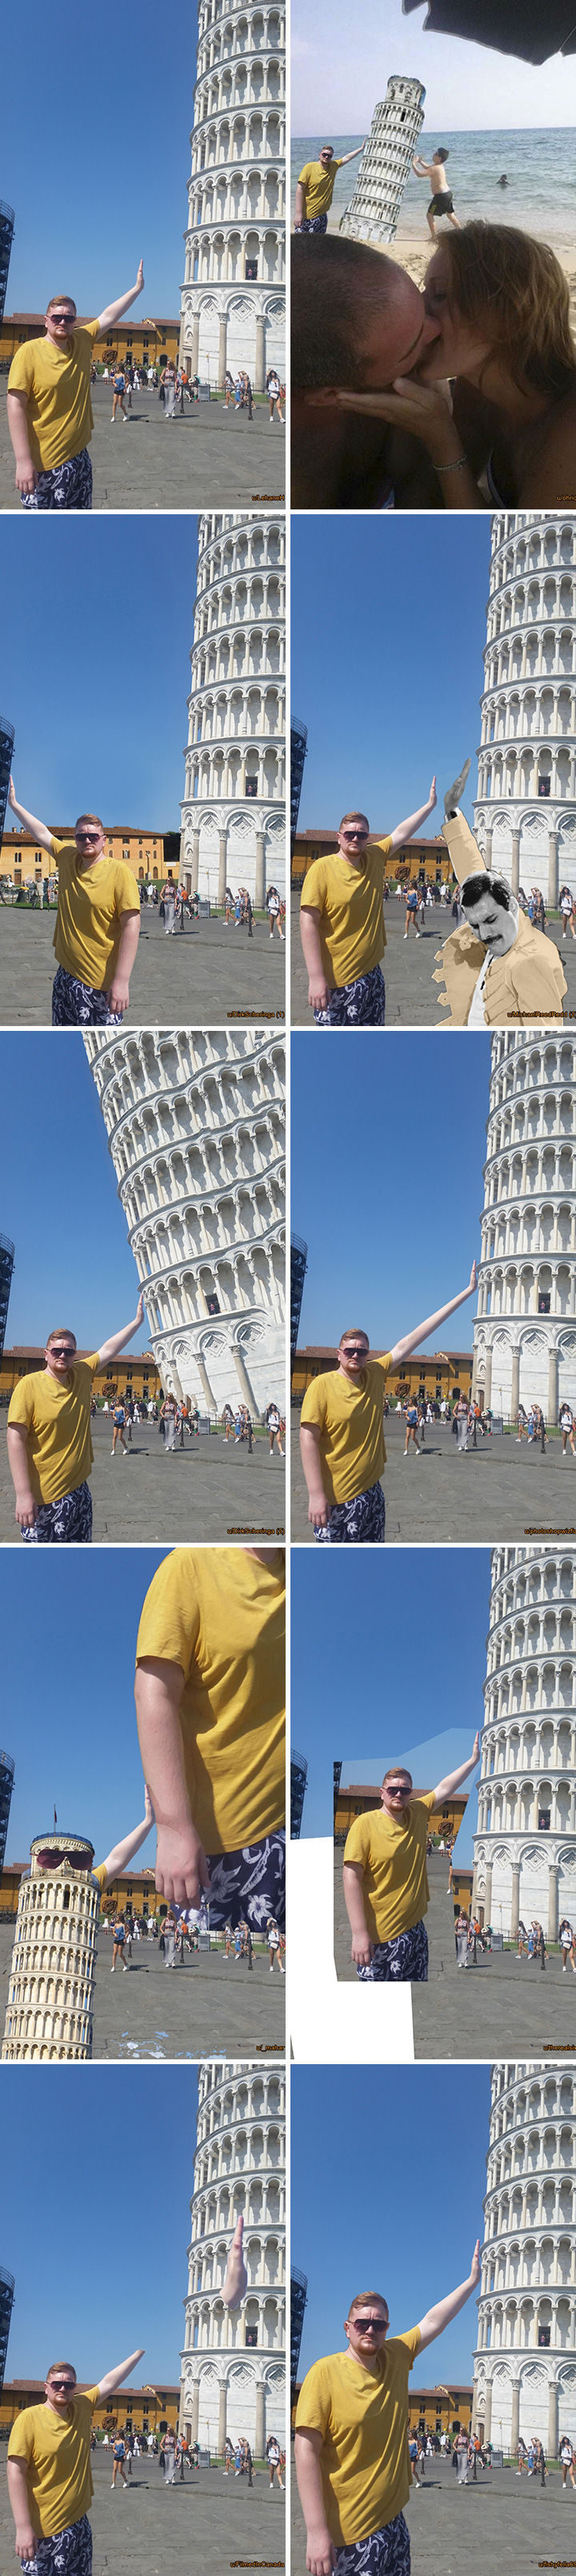 """25 Funny Photoshop Trolls - """"Can you Photoshop my hand onto the Leaning Tower of Pisa if possible?"""""""